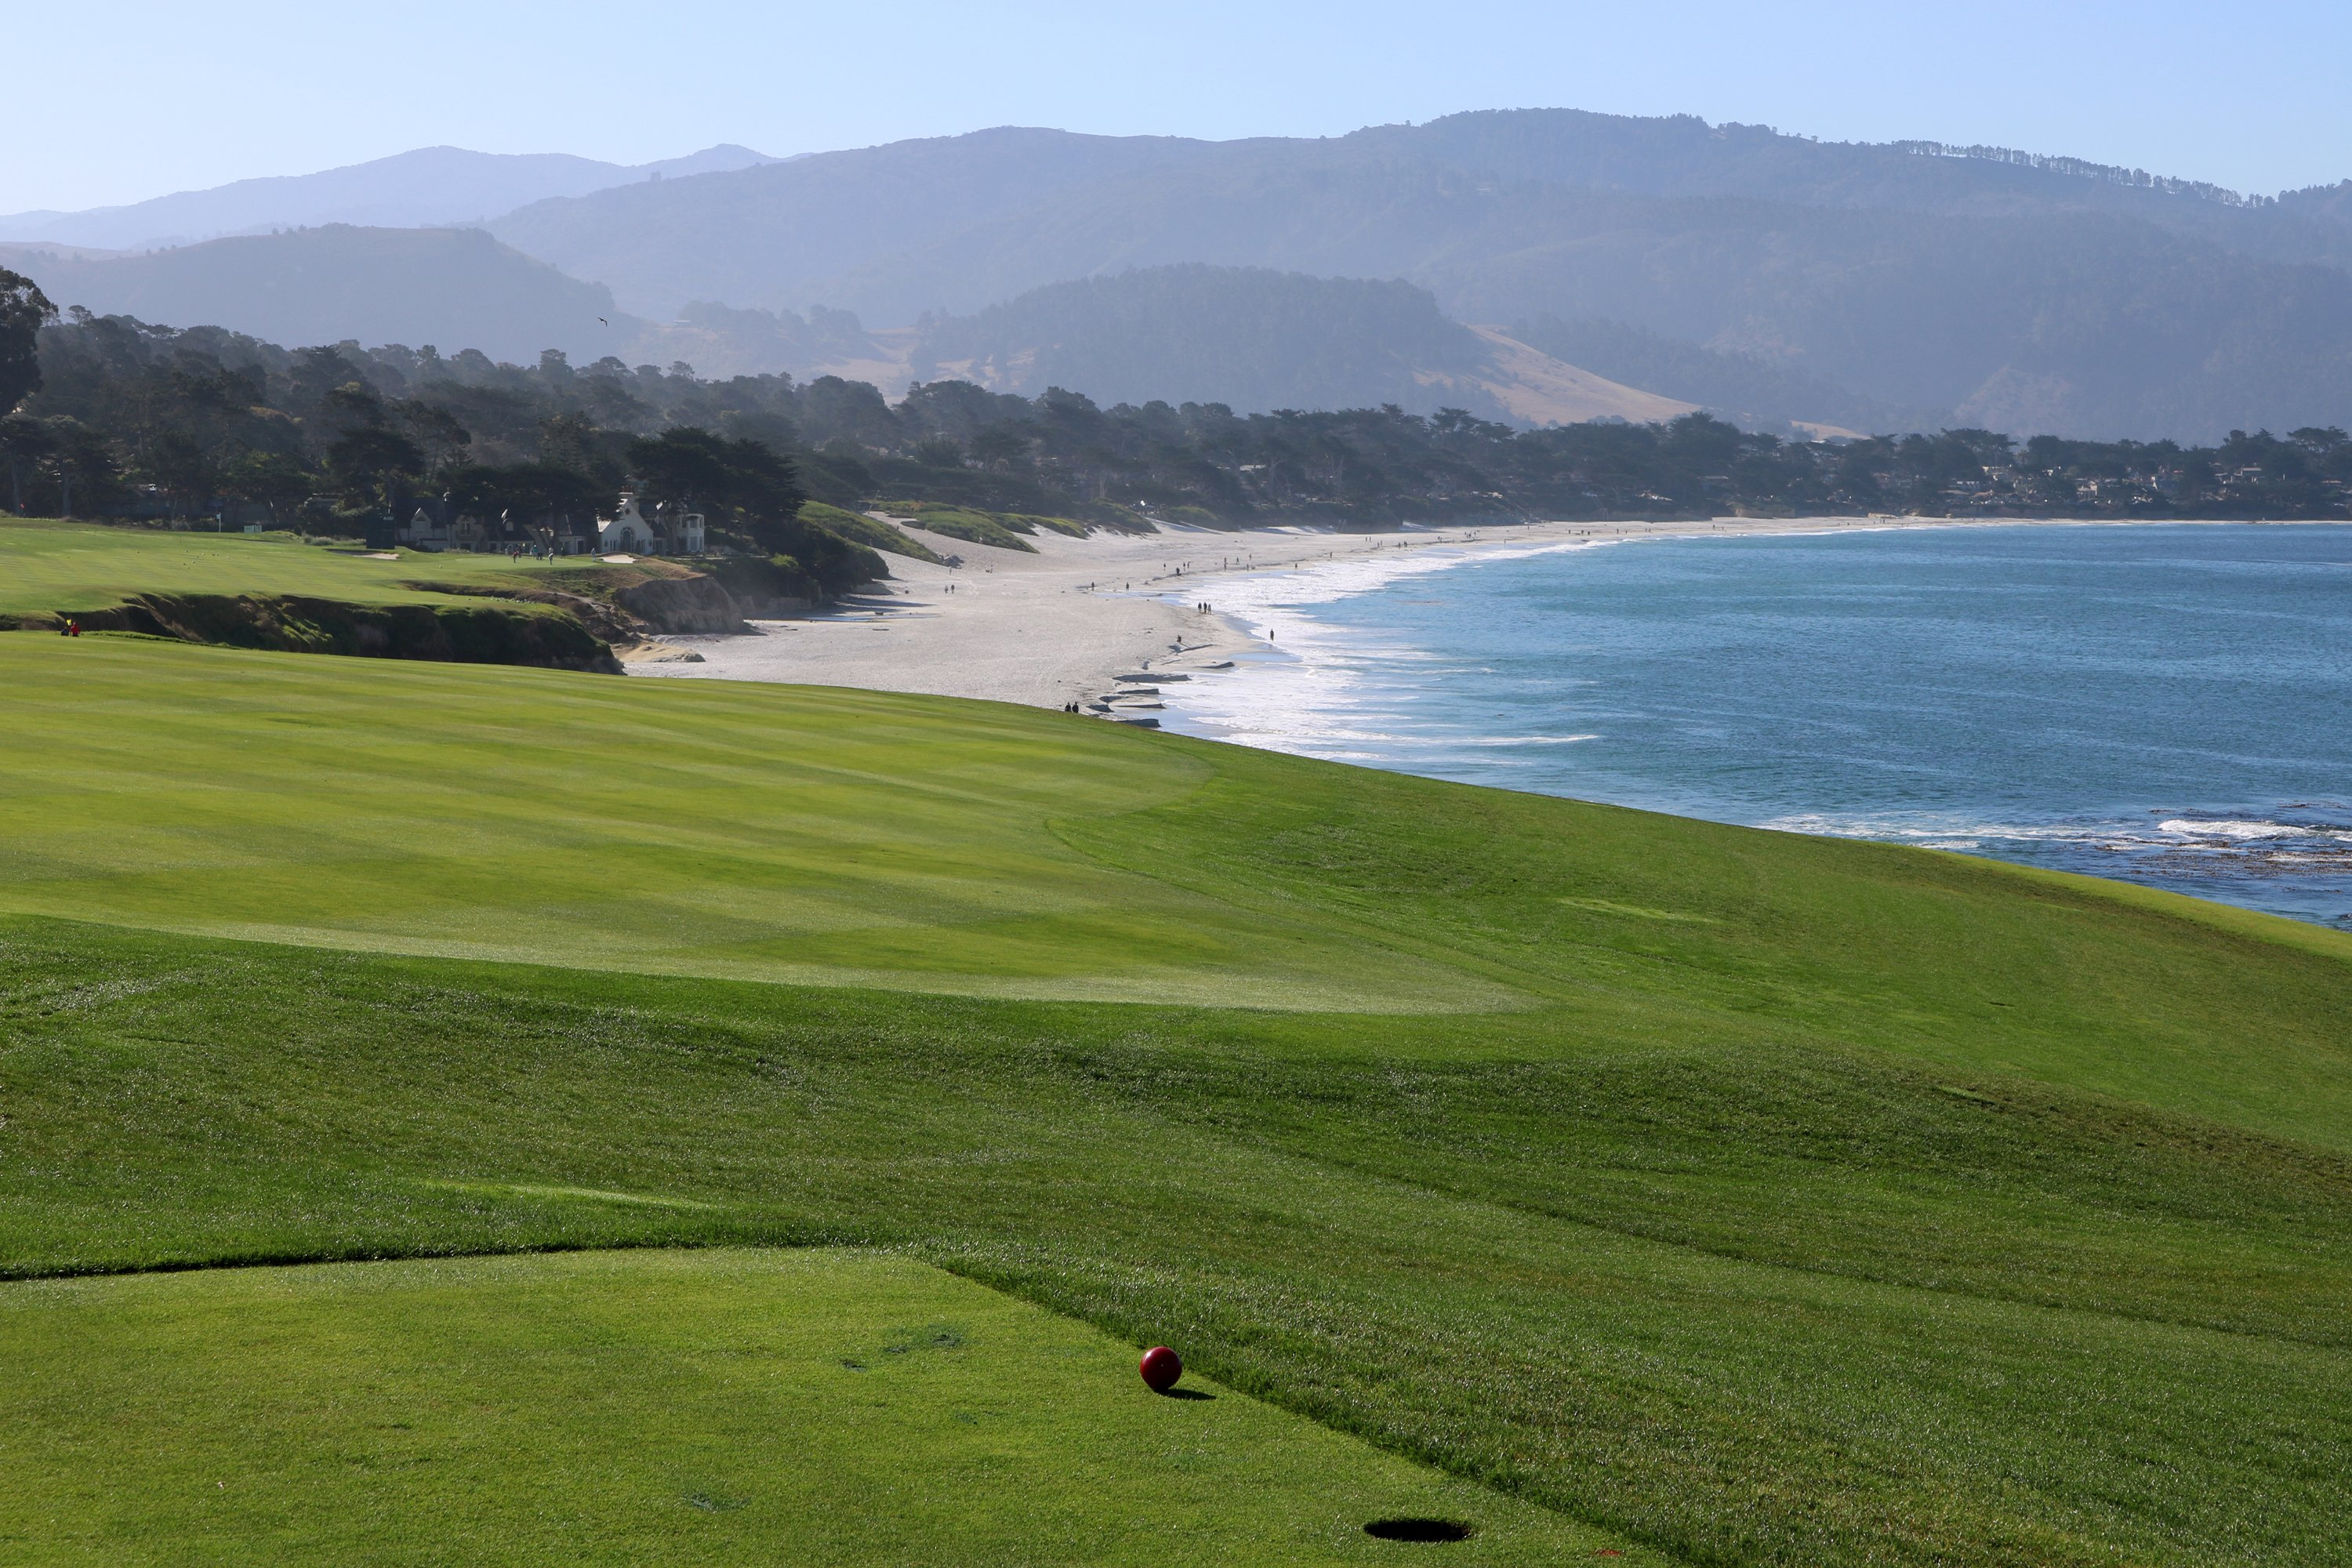 Blues Skies Warm Weather And A Scenic View Near The 9th Hole Of Pebble Beach